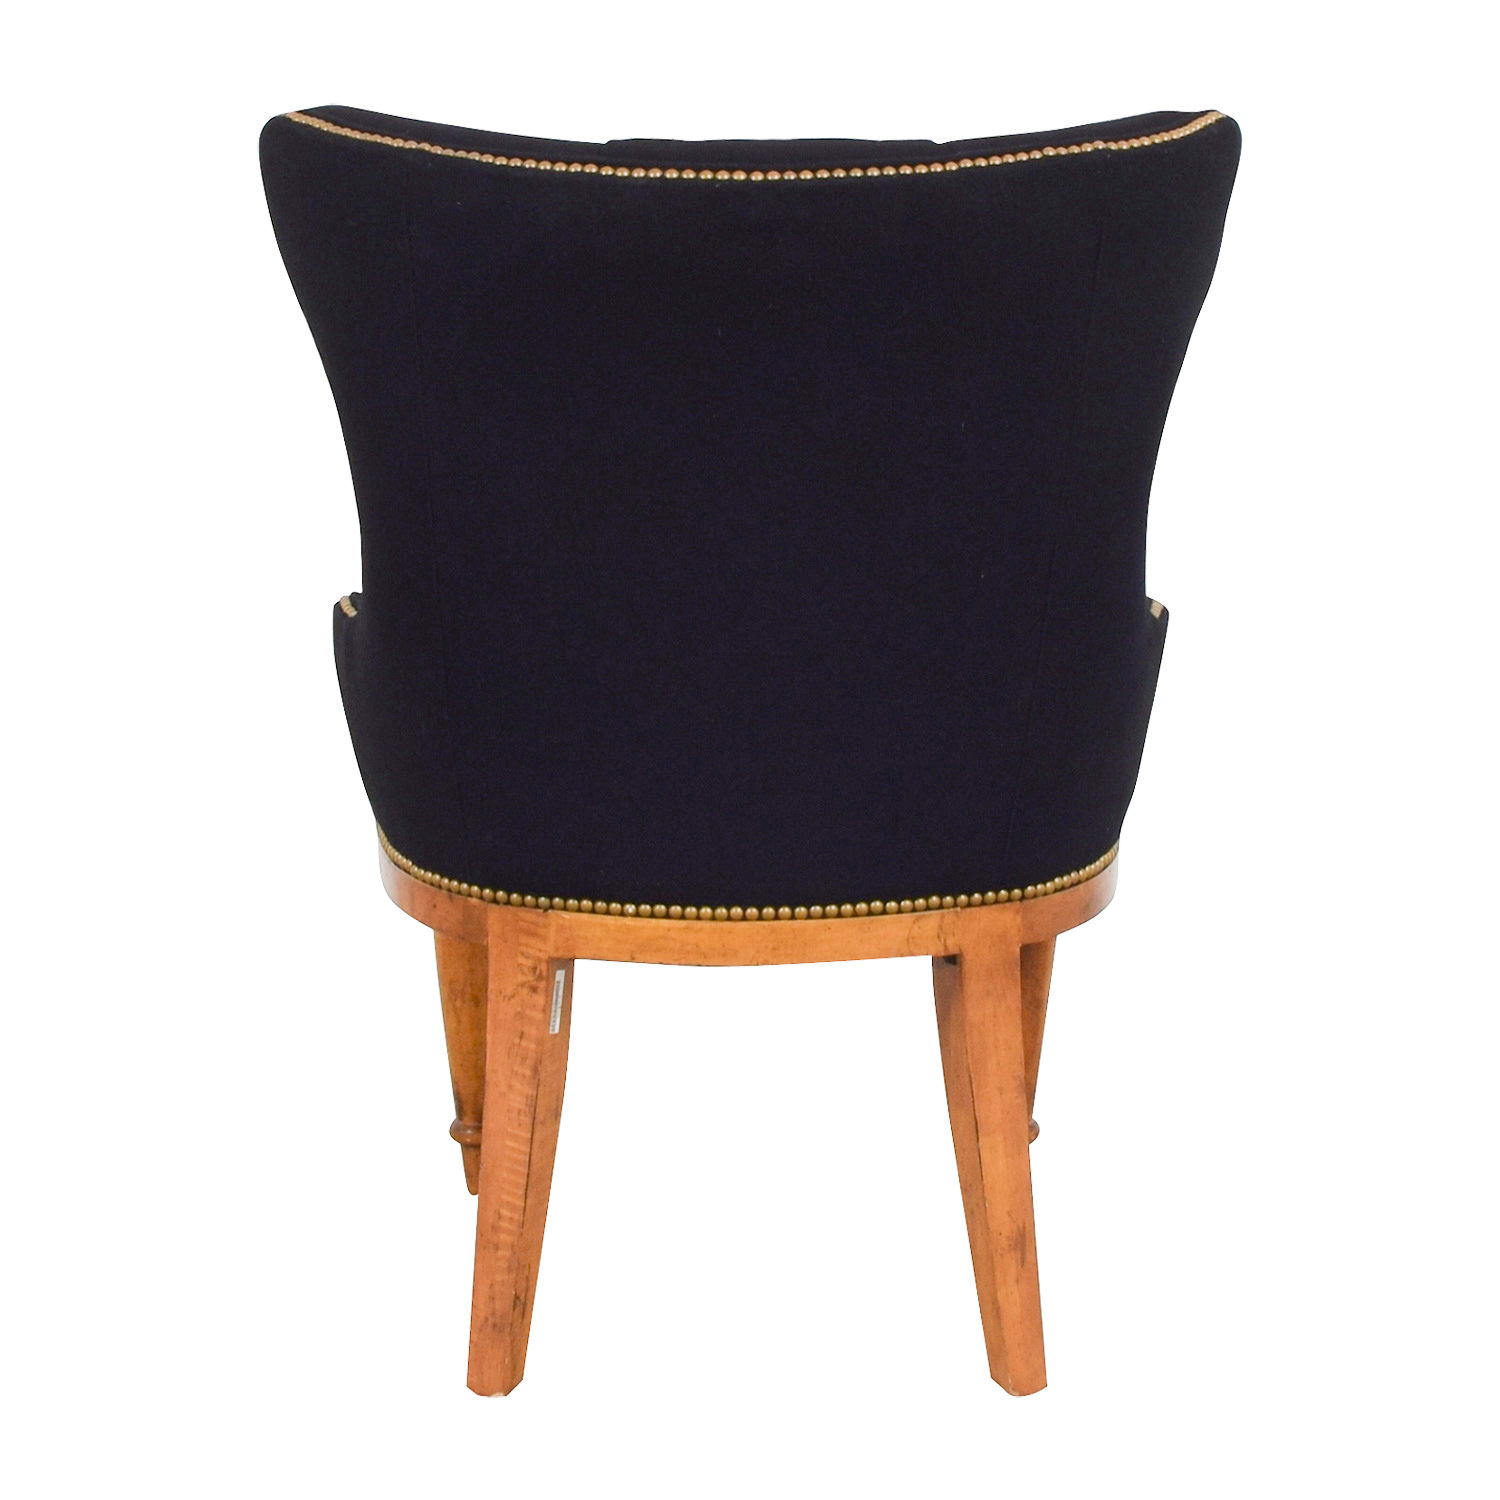 Furniture Masters Furniture Masters Black Tufted Nailhead Accent Chair used